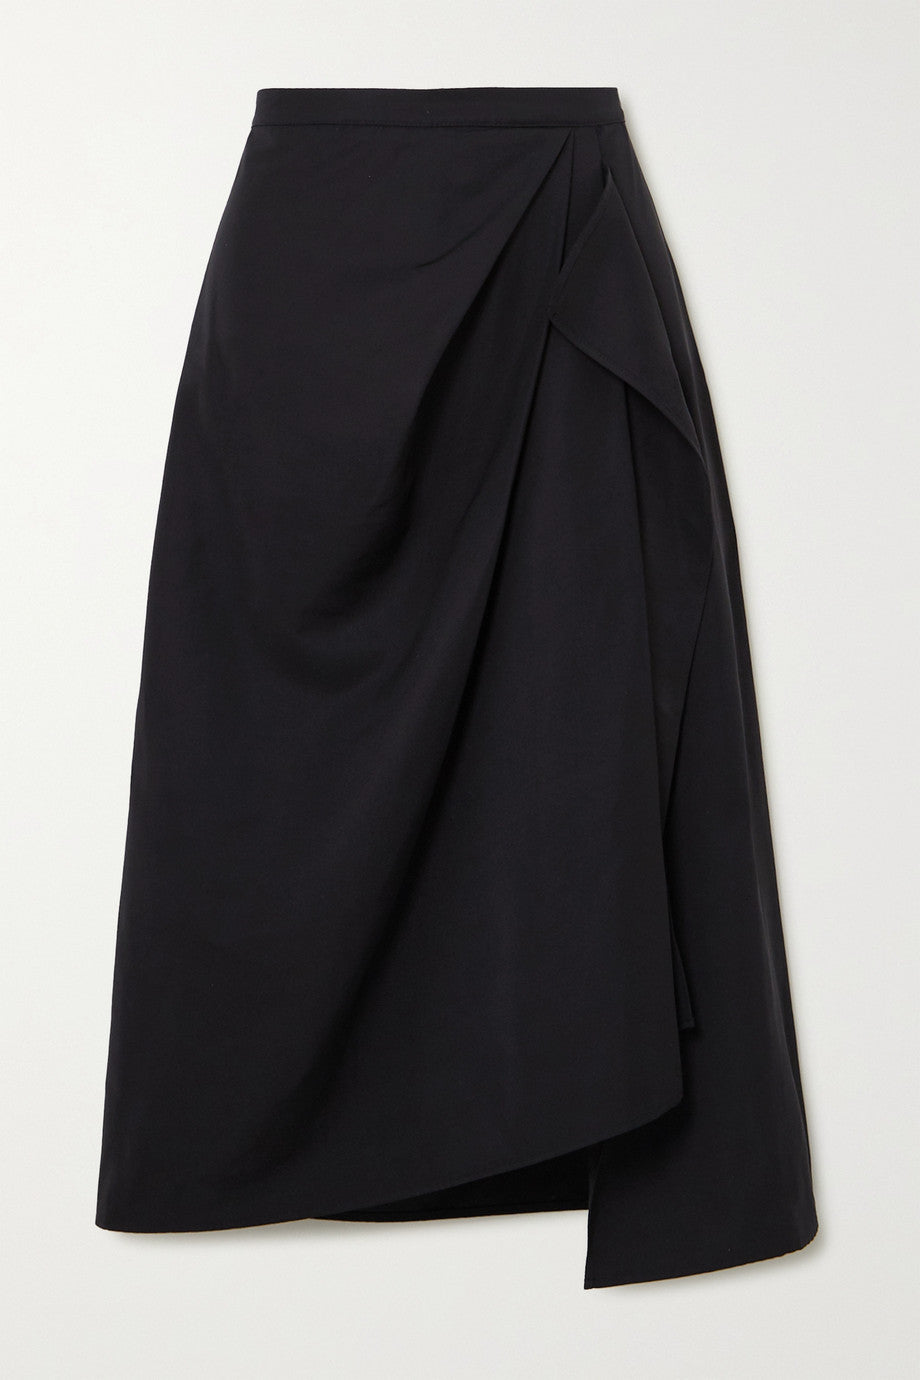 The R Collective + Net Sustain Welland Asymmetric Draped Taffeta Black Midi Skirt